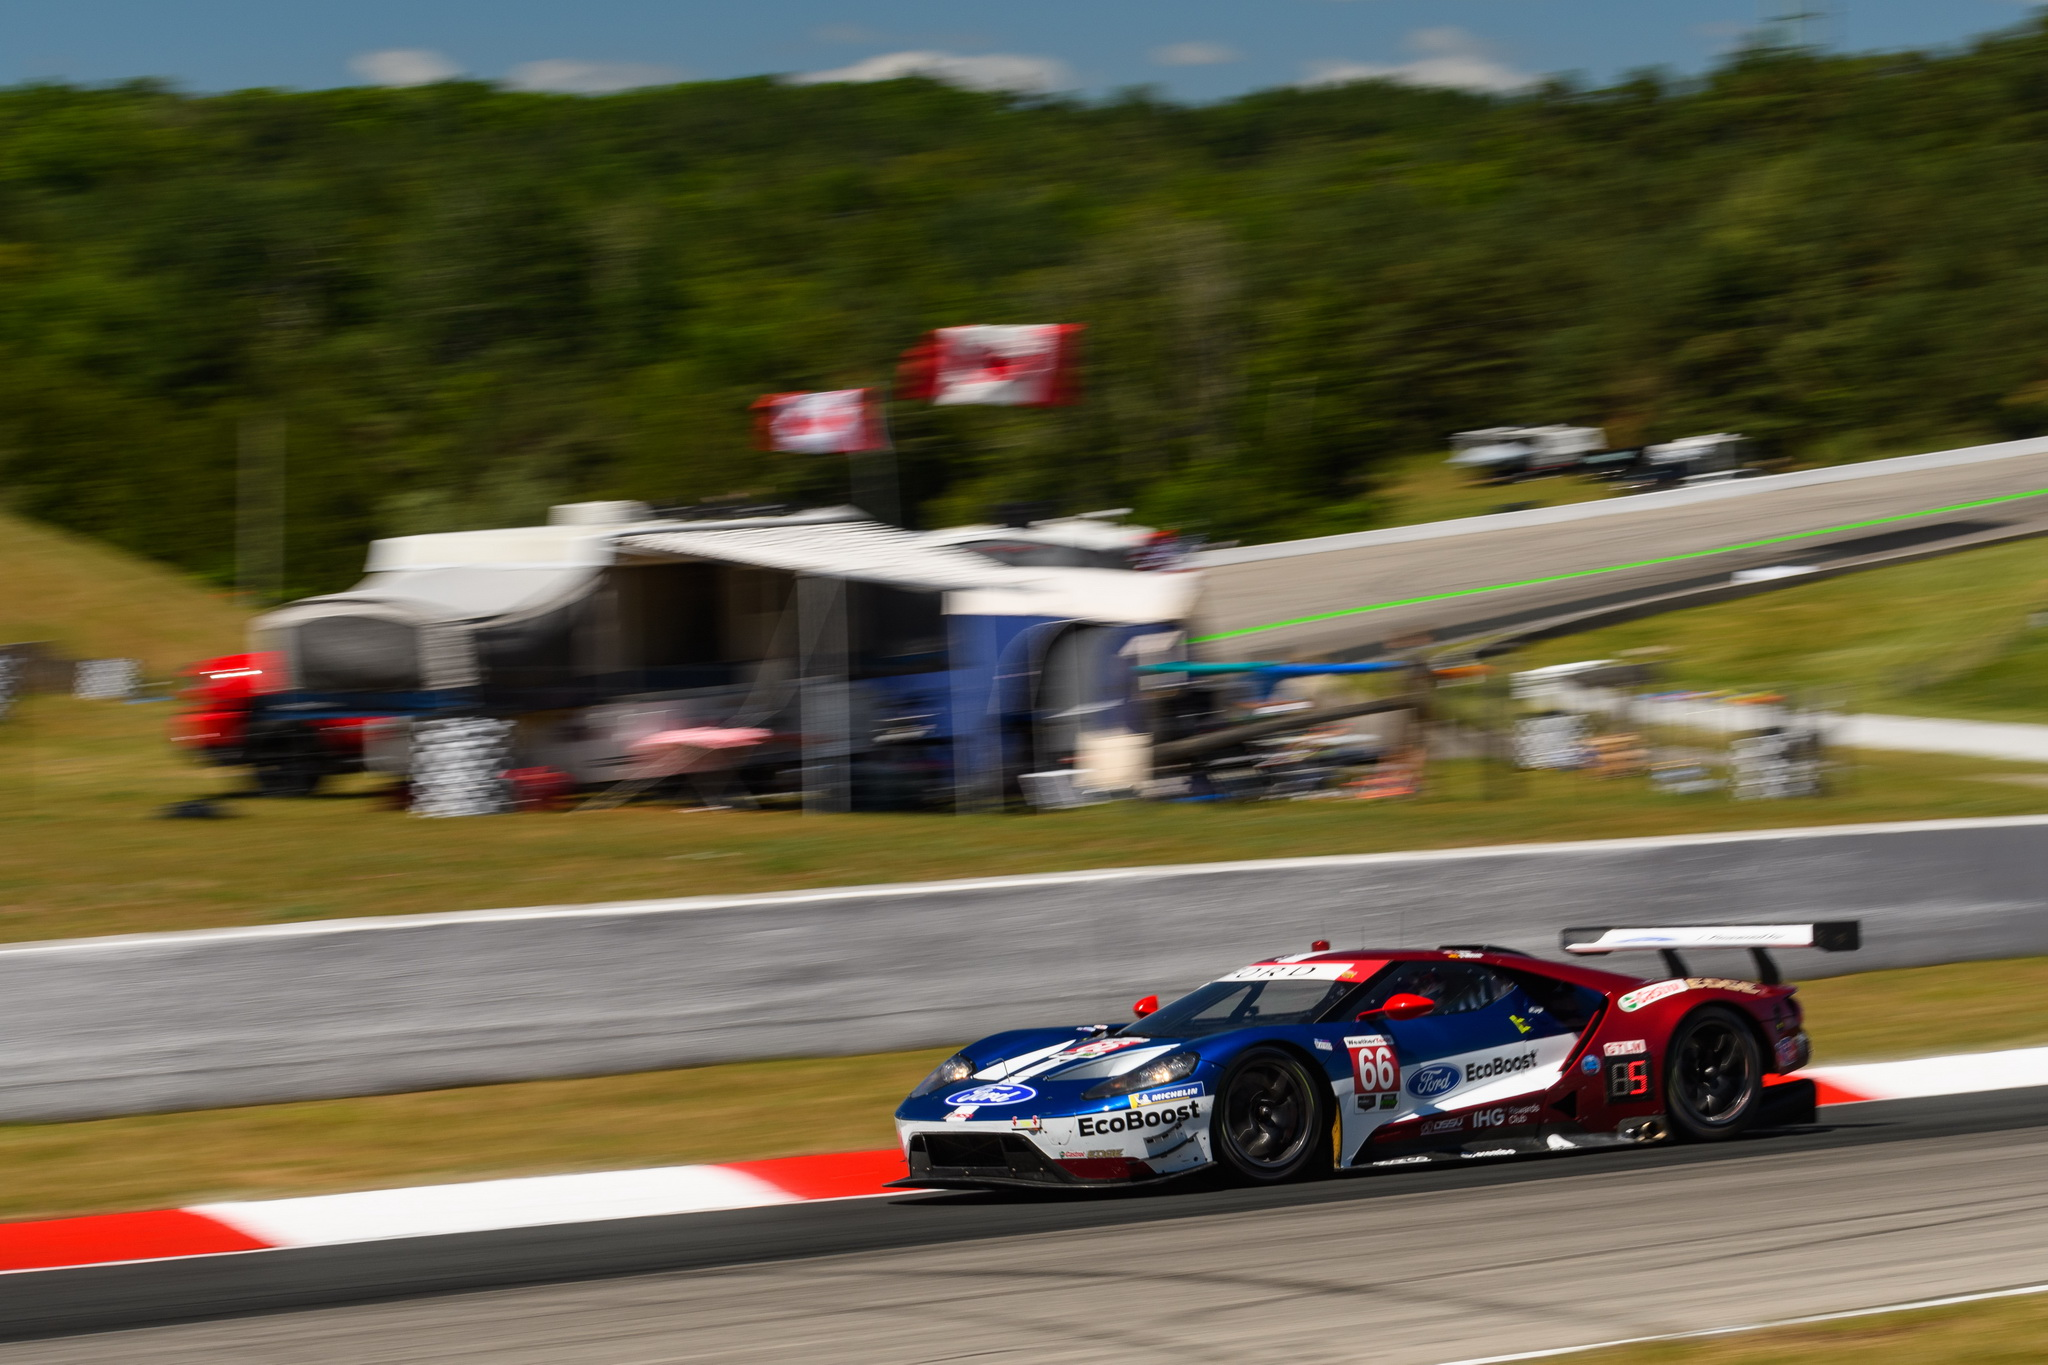 Ford Chip Ganassi Racing Earns Second Win In A Row As Richard Westbrook, Ryan Briscoe Drive to Victory Lane at CTMP